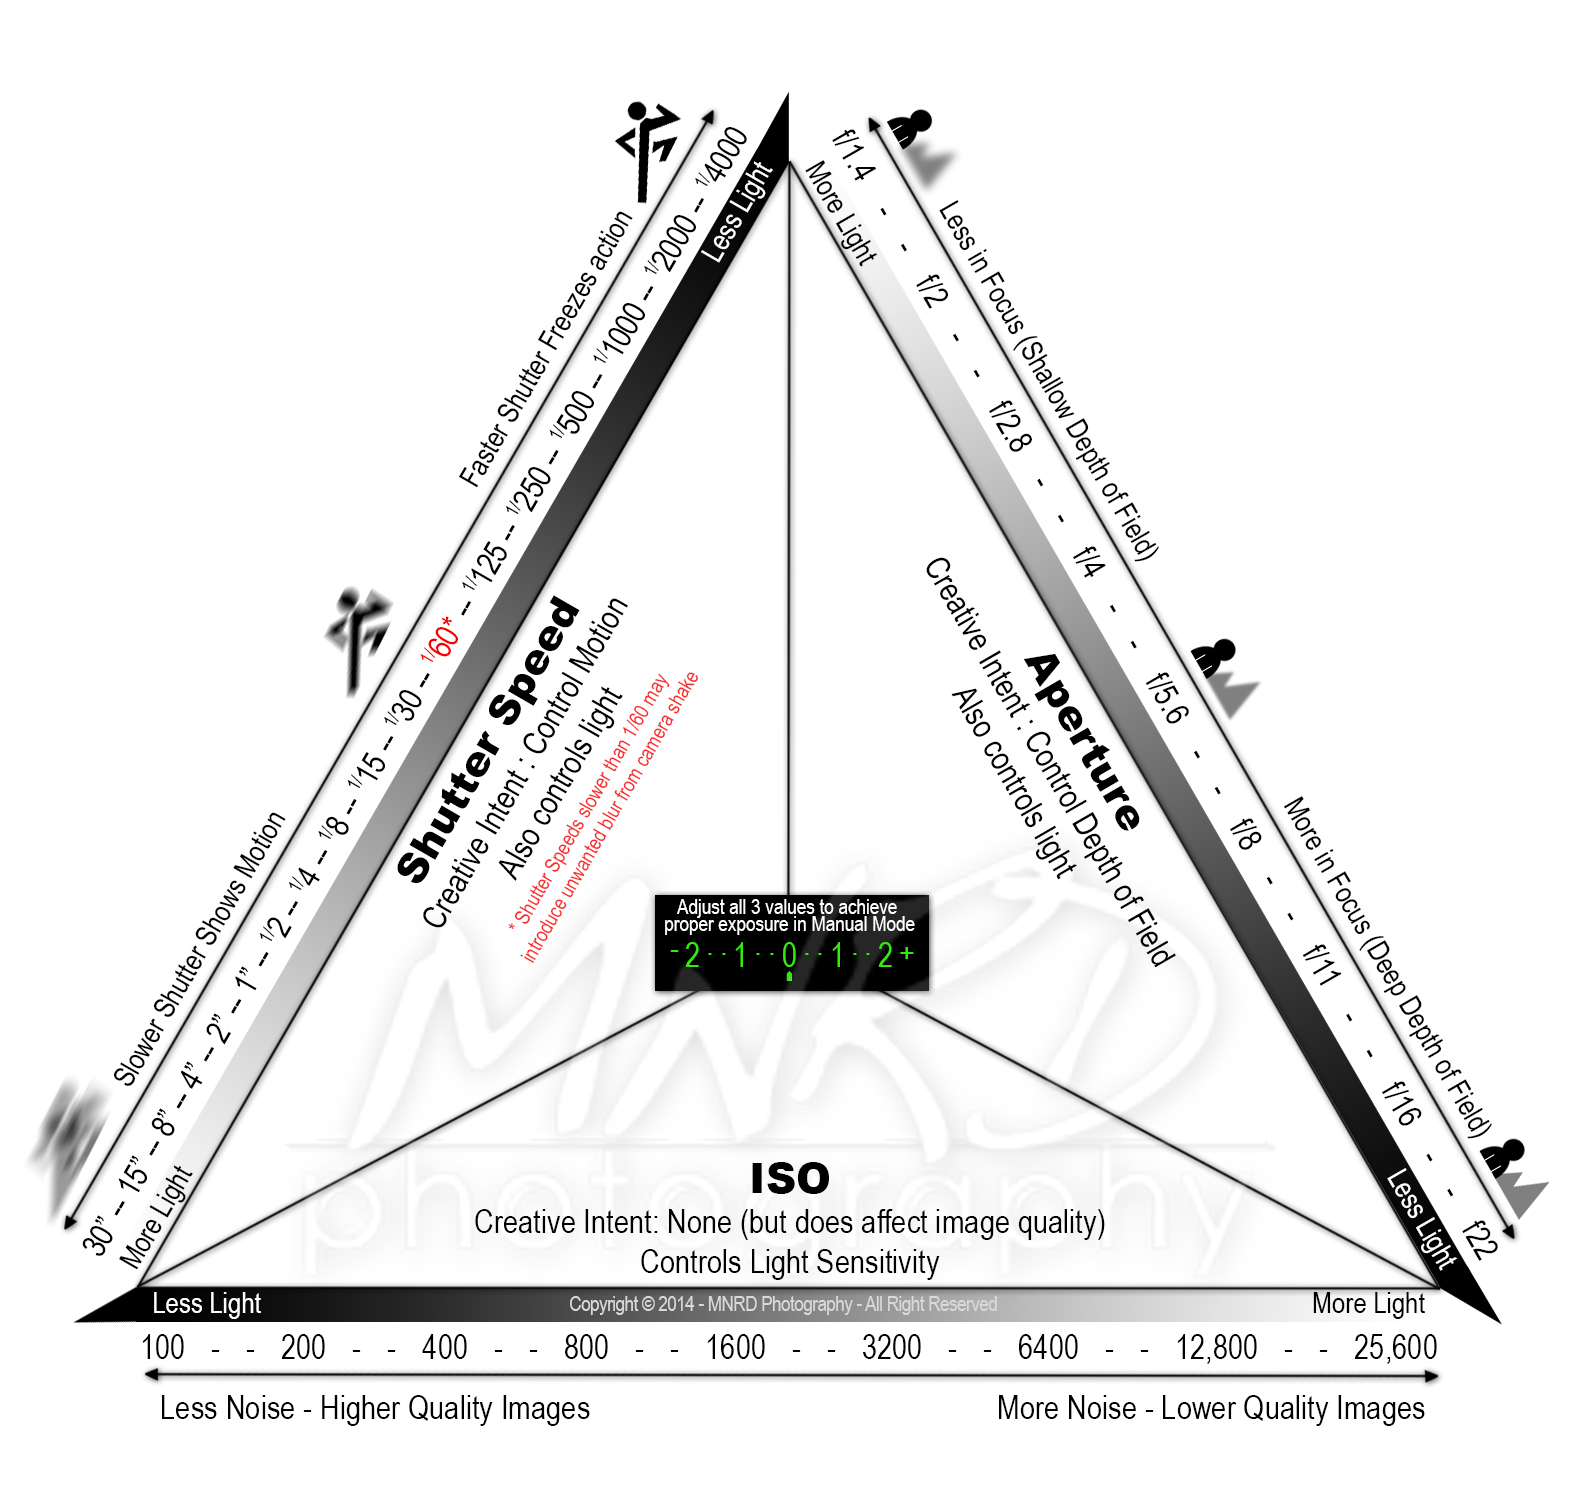 Re: Understanding the exposure triangle: Photographic